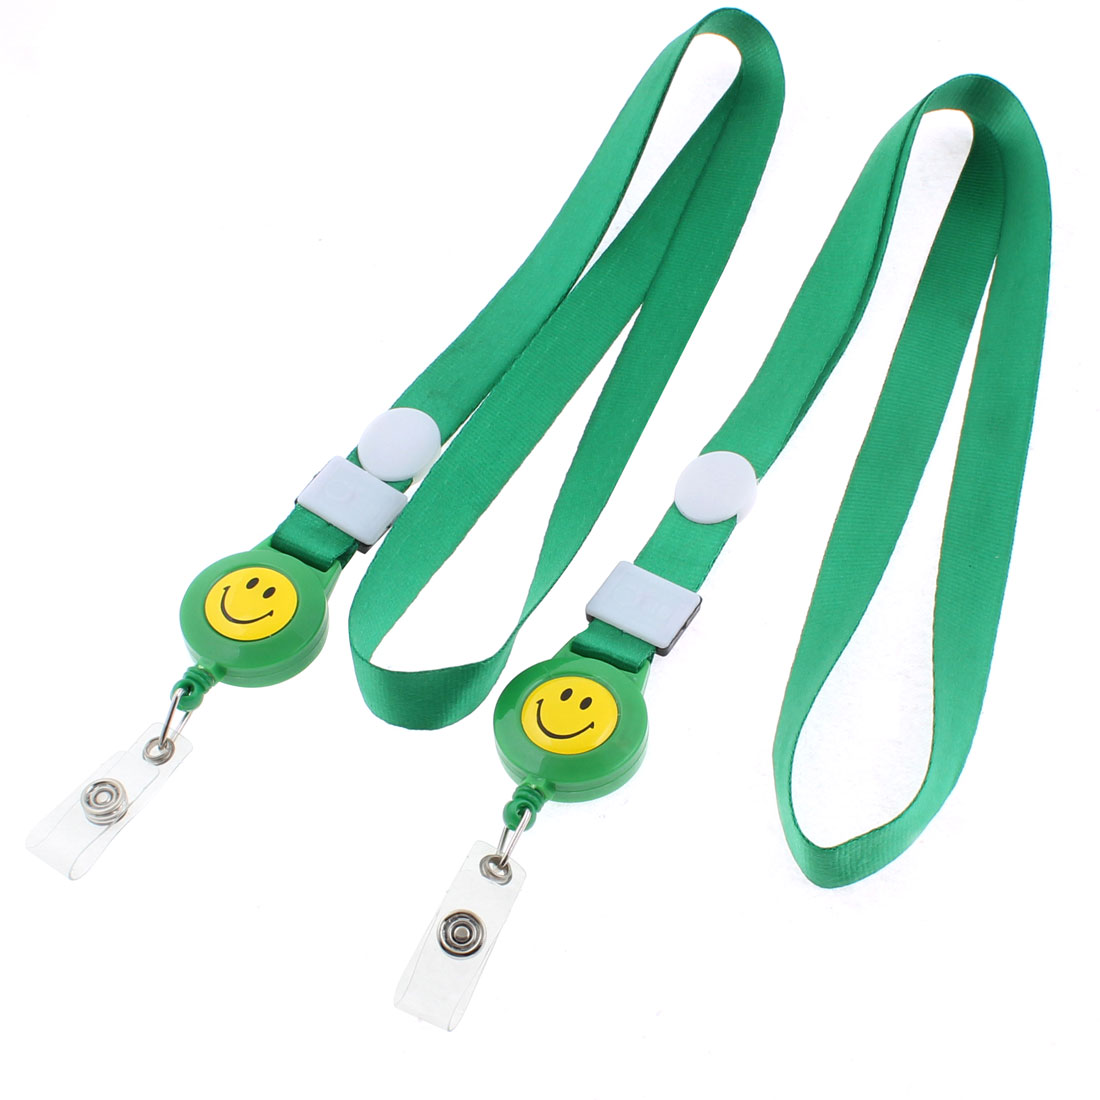 Smile Face Pattern Work School ID Card Tag Badge Holder Lanyard Neck Strap Green 2PCS